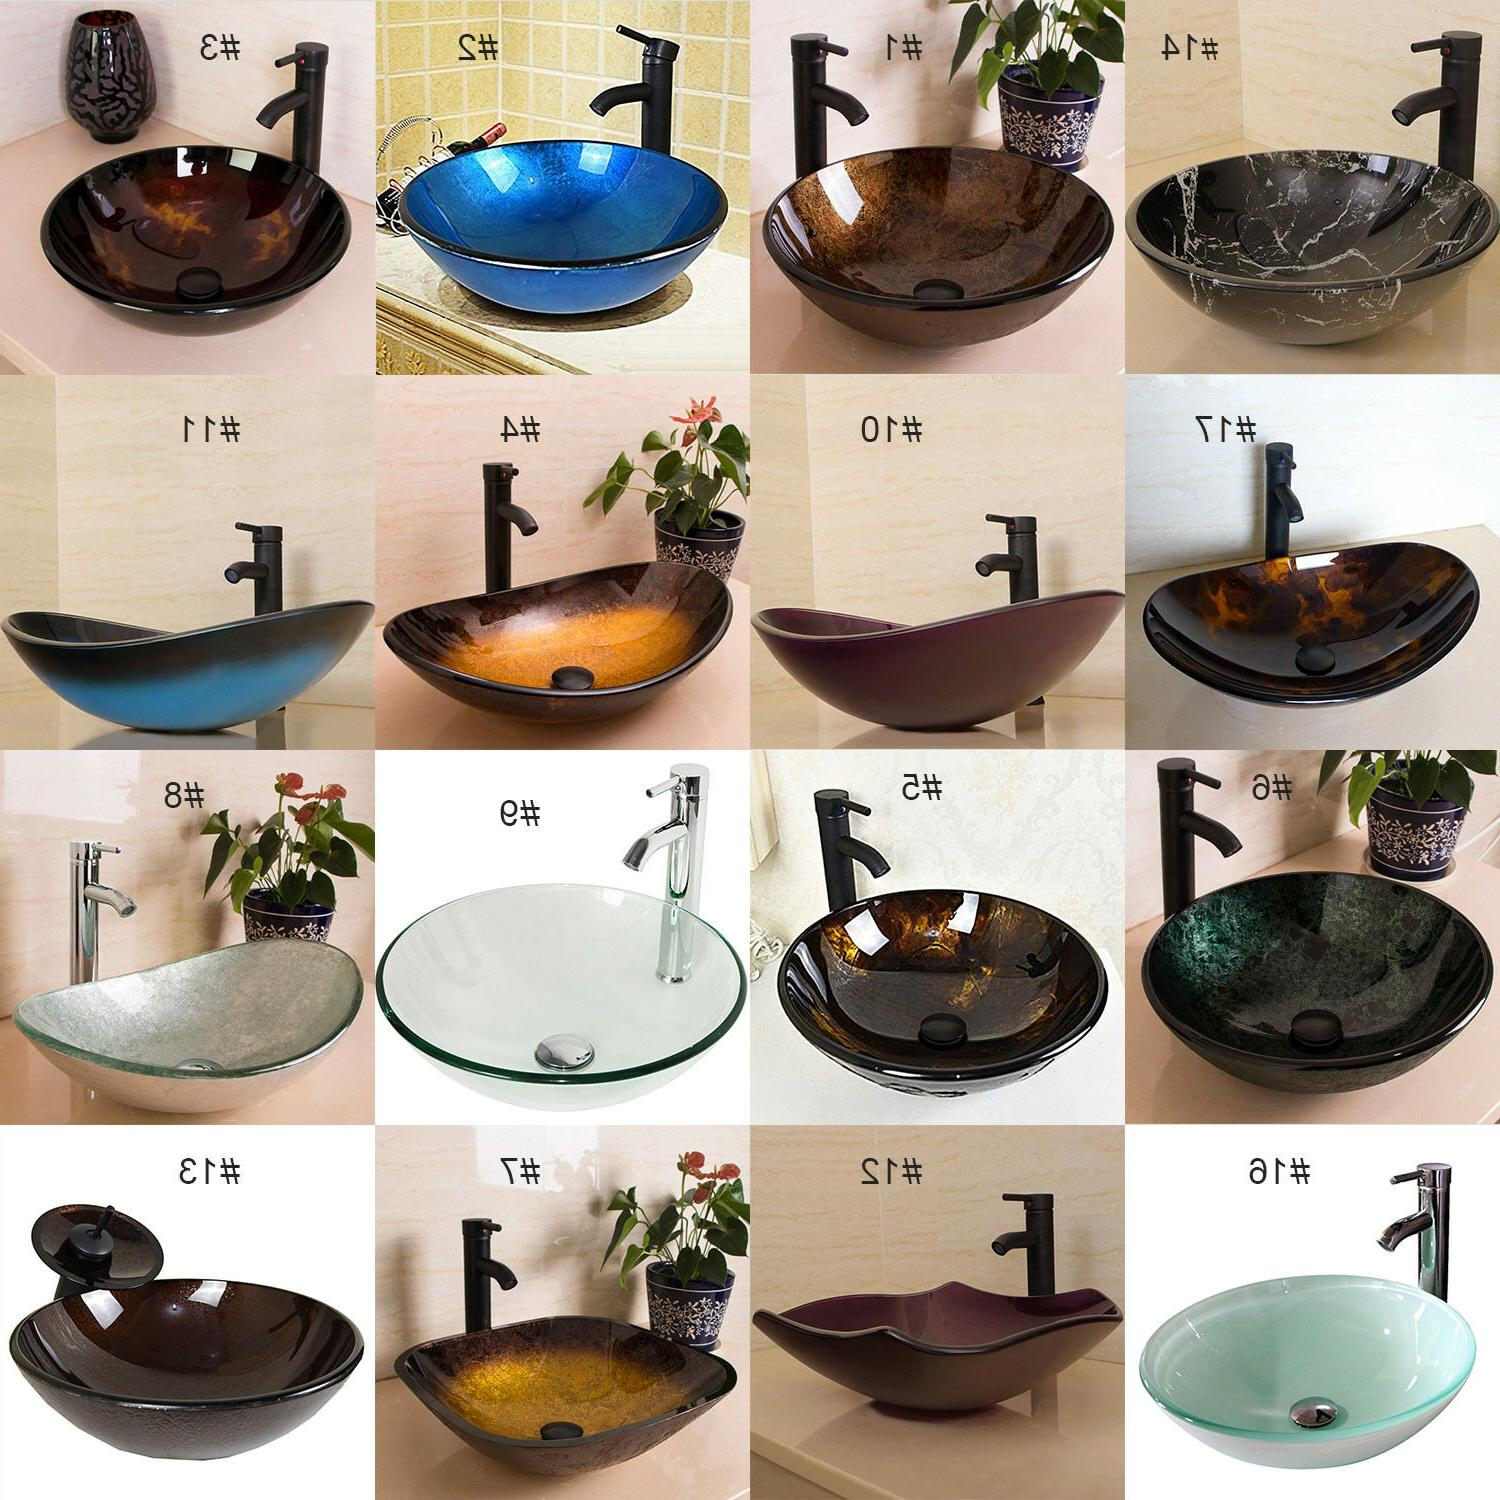 Bathroom Tempered Glass Vessel Sink Bowl Faucet Pop-up Drain